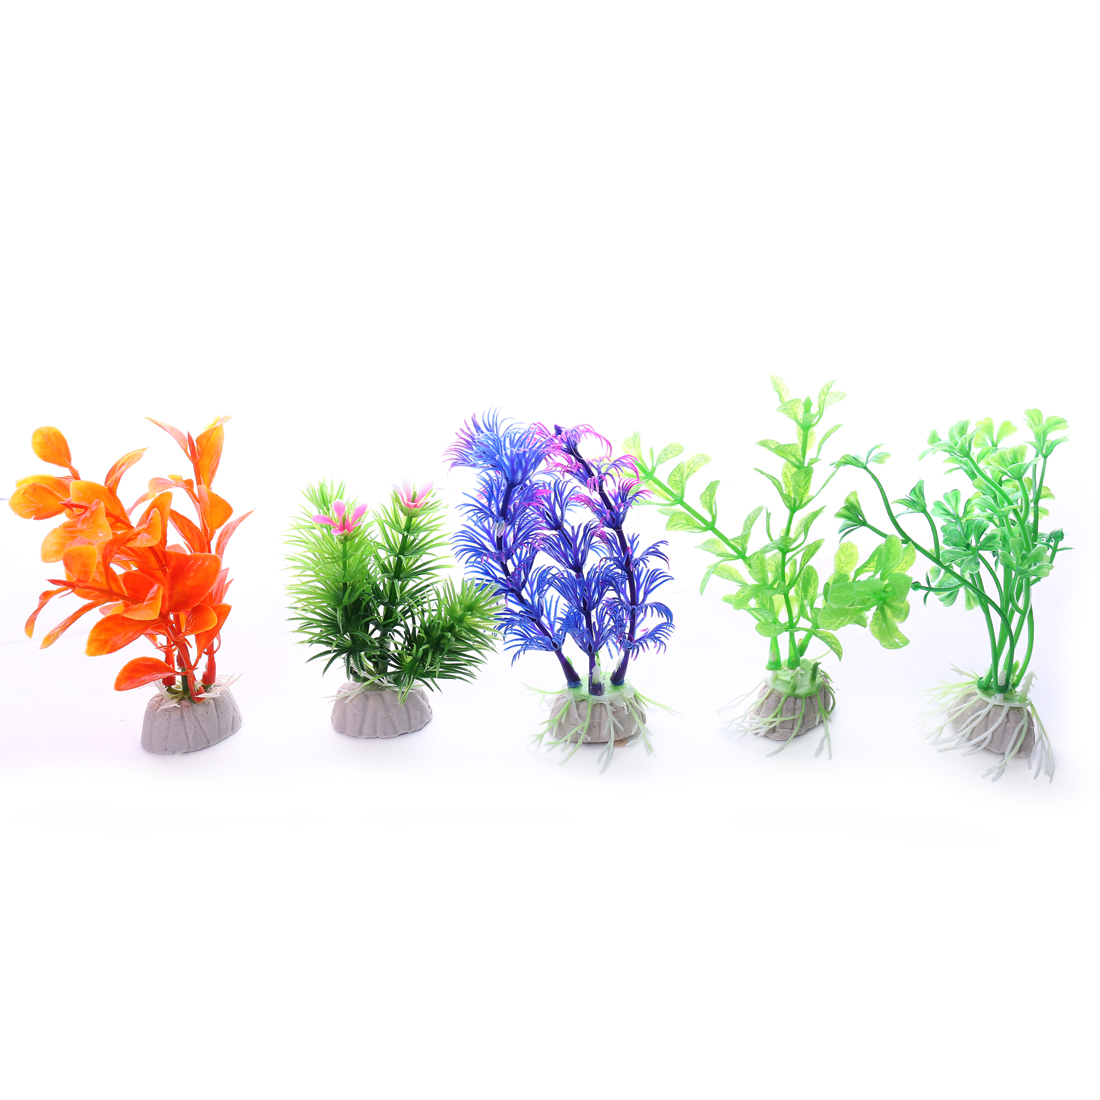 max long 11cm 5 pieces multi color small Aquarium Plastic Plants